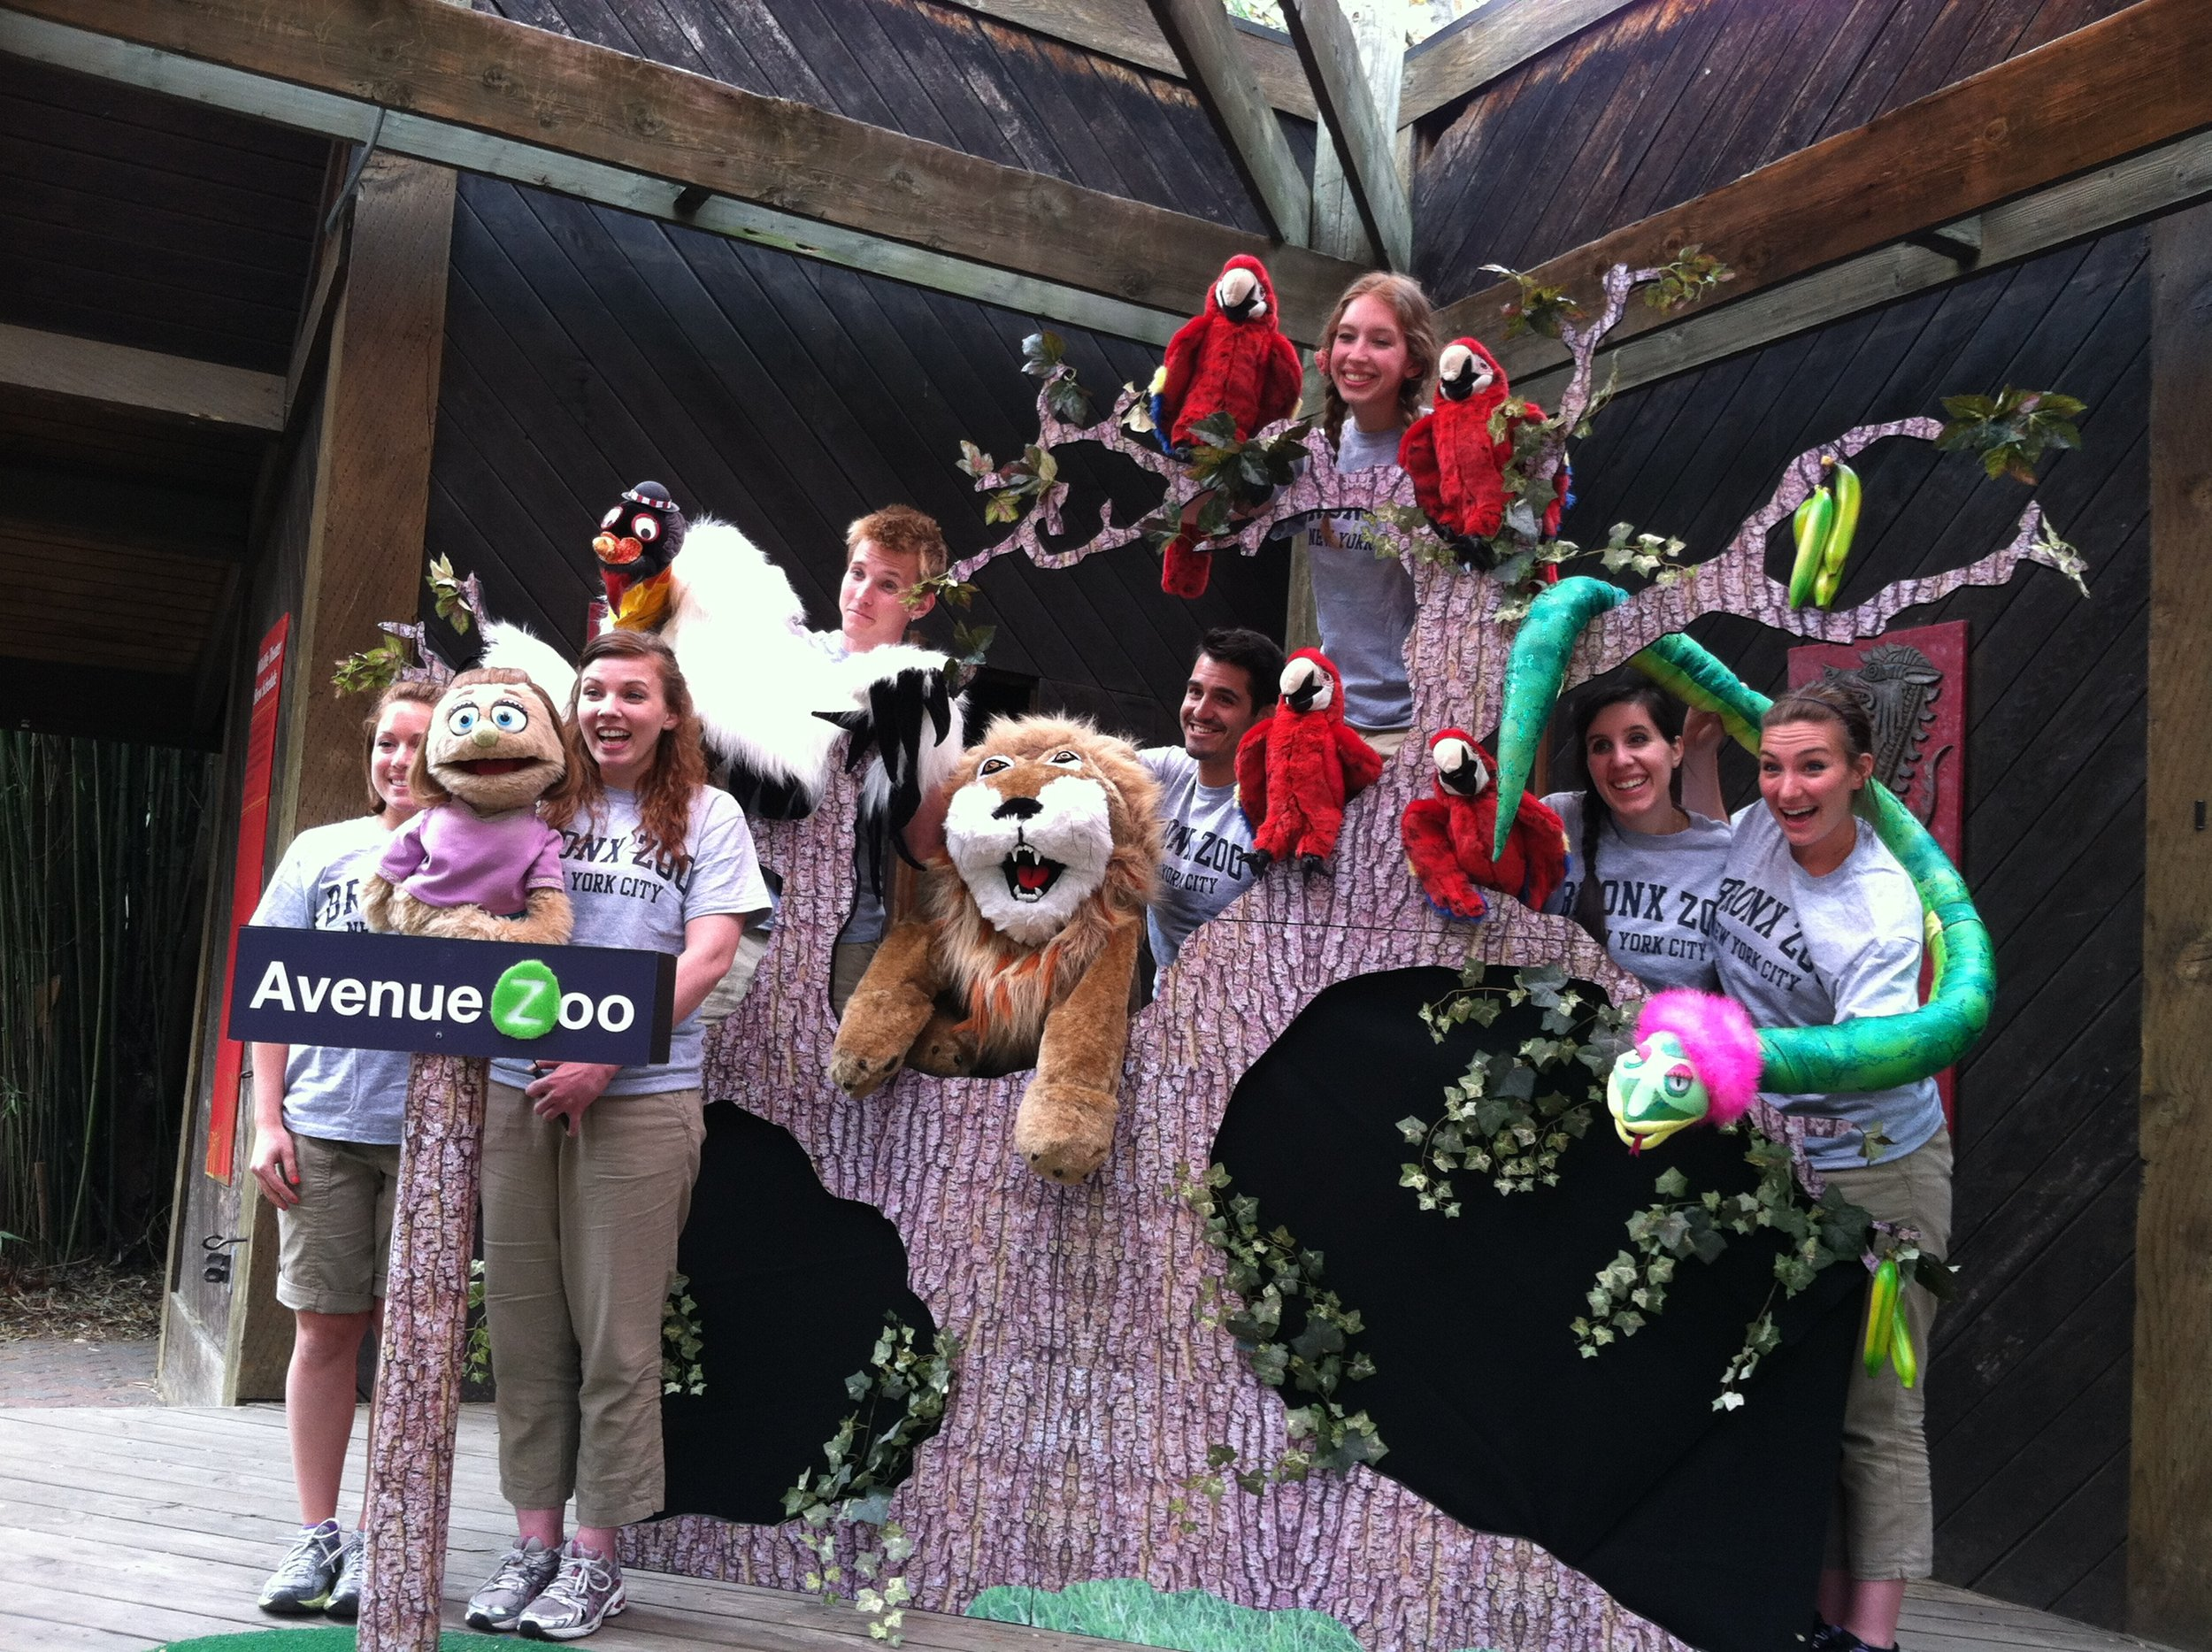 Cast of Avenue Zoo at the Bronx Zoo (co-written and directed by me).